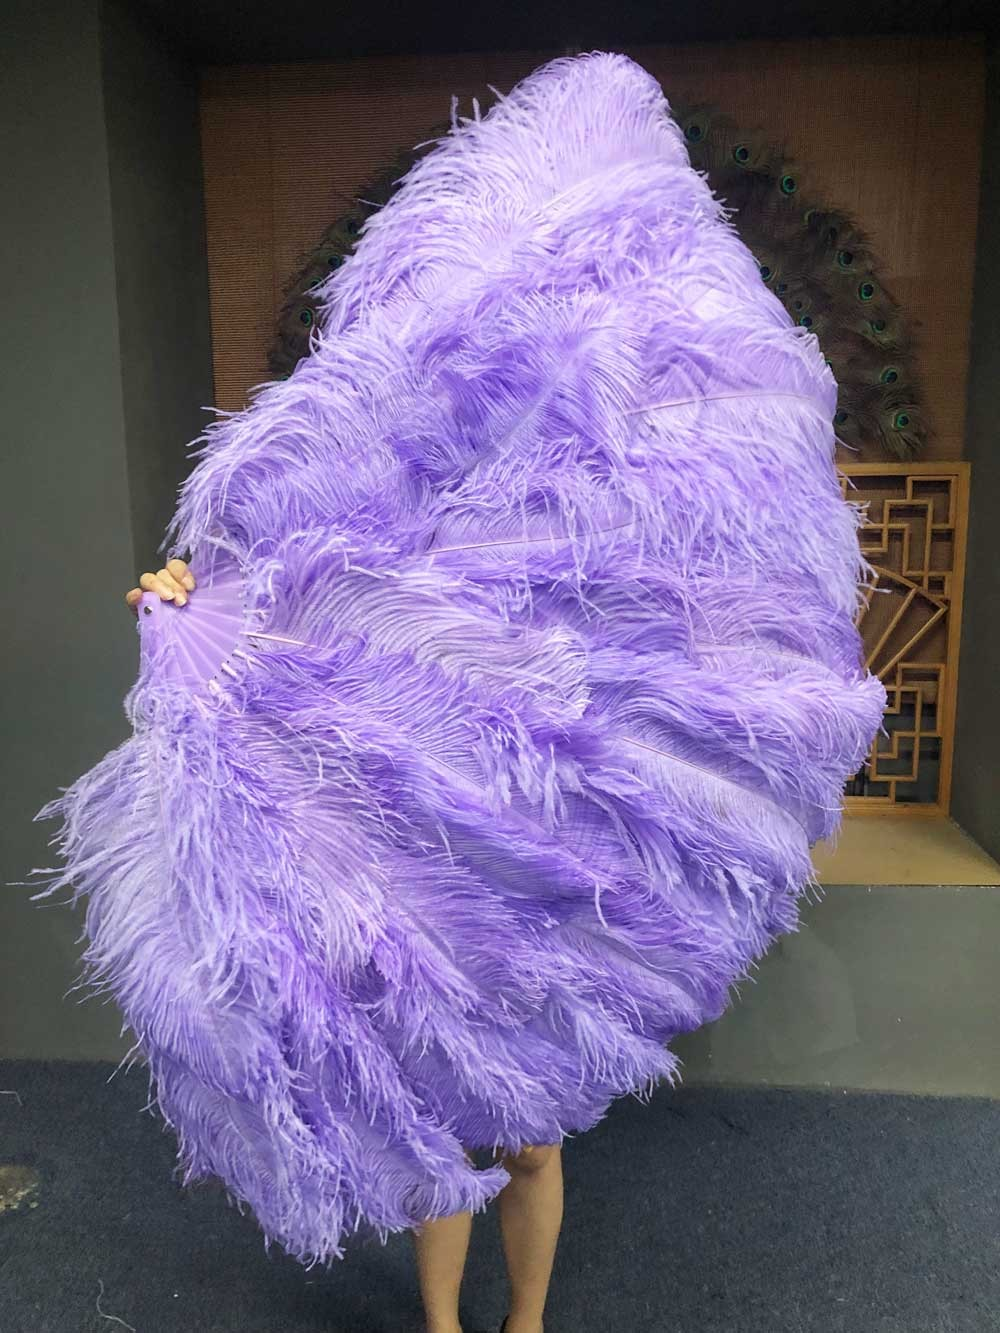 XL 2 Layers hot pink Ostrich Feather Fan 34/'/'x 60/'/' with Travel leather Bag